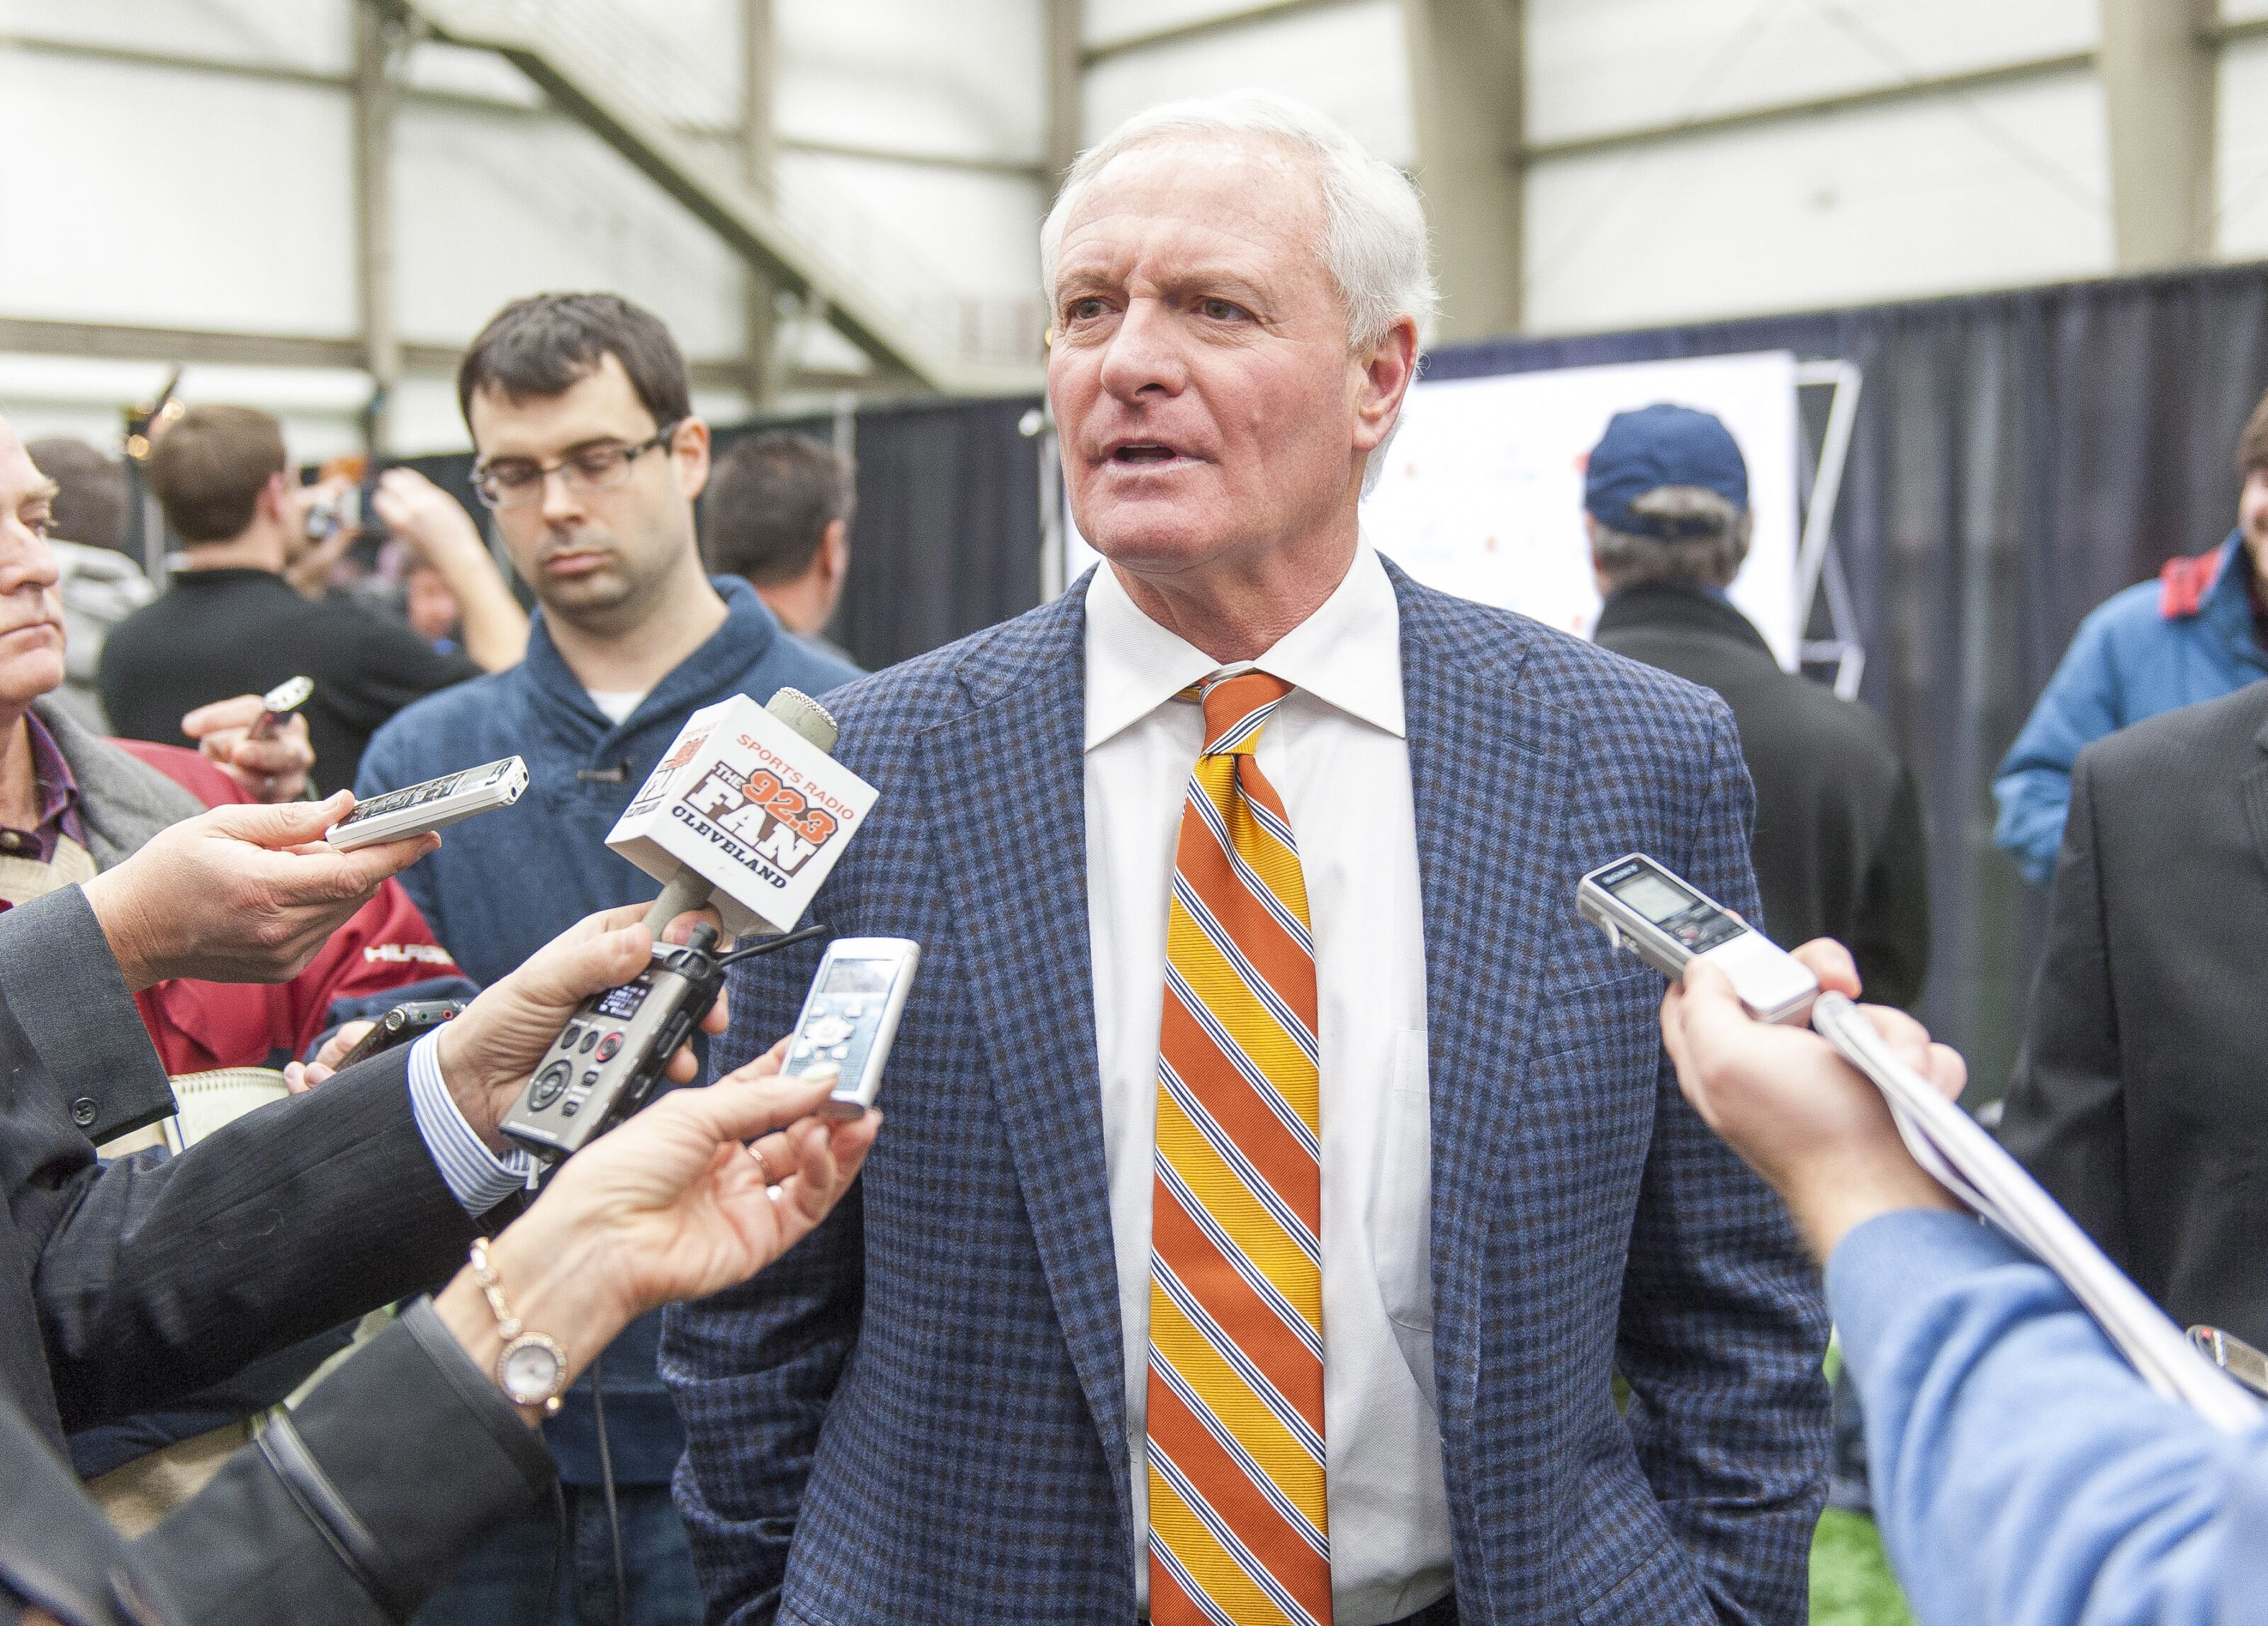 Cleveland Browns News: Berea headquarters lease extended to 2039